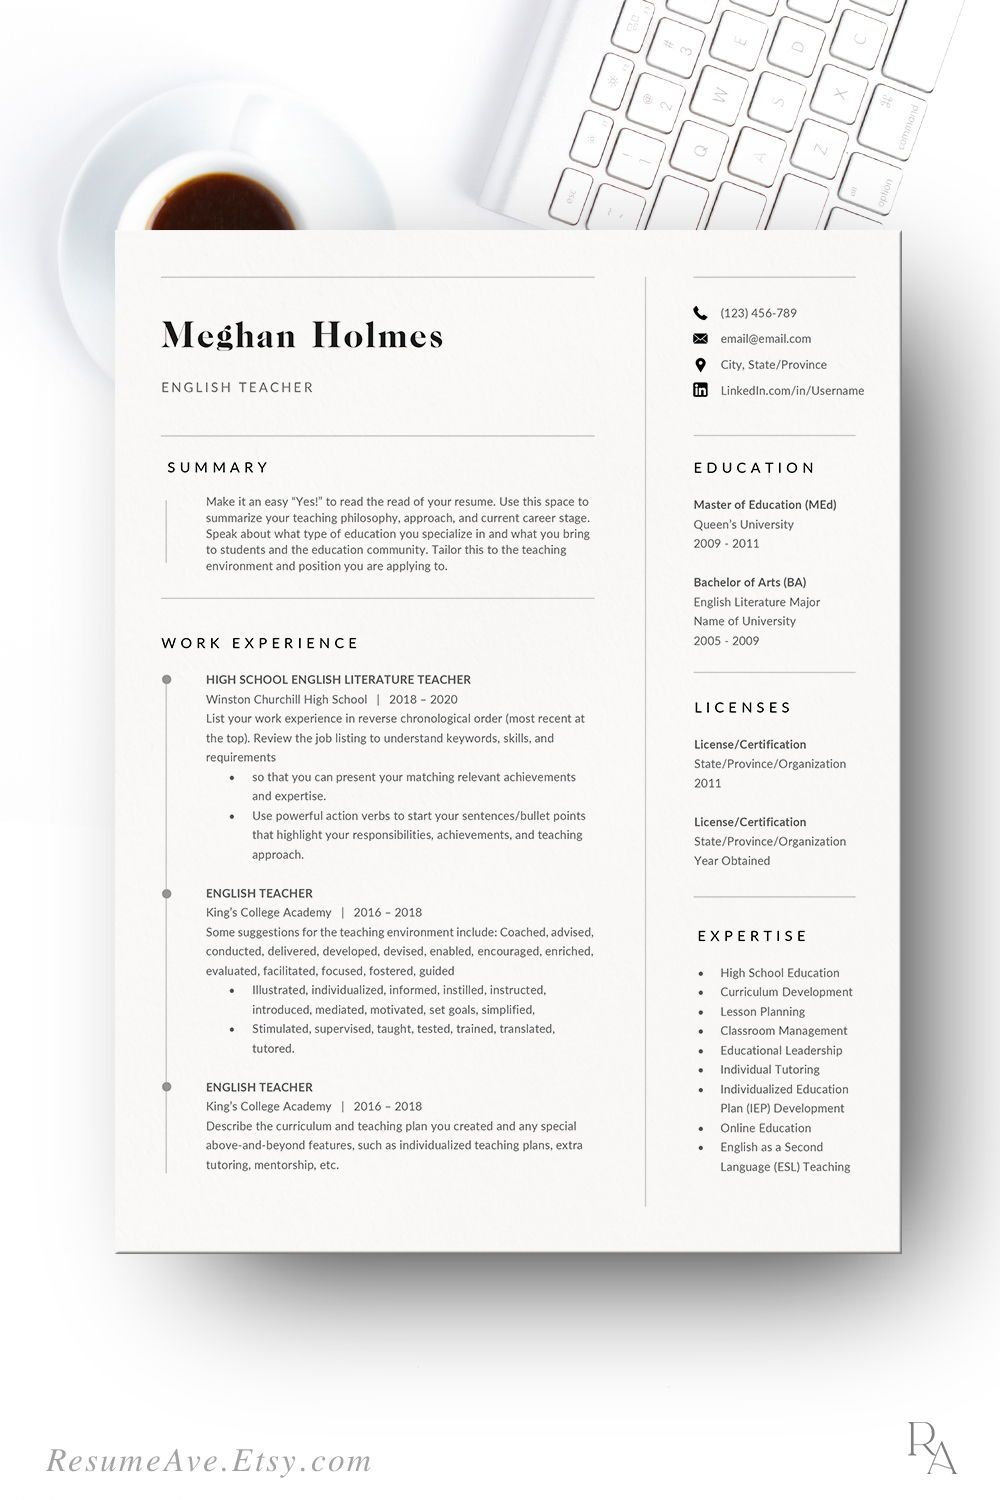 Elegant teacher resume template Word and cover letter